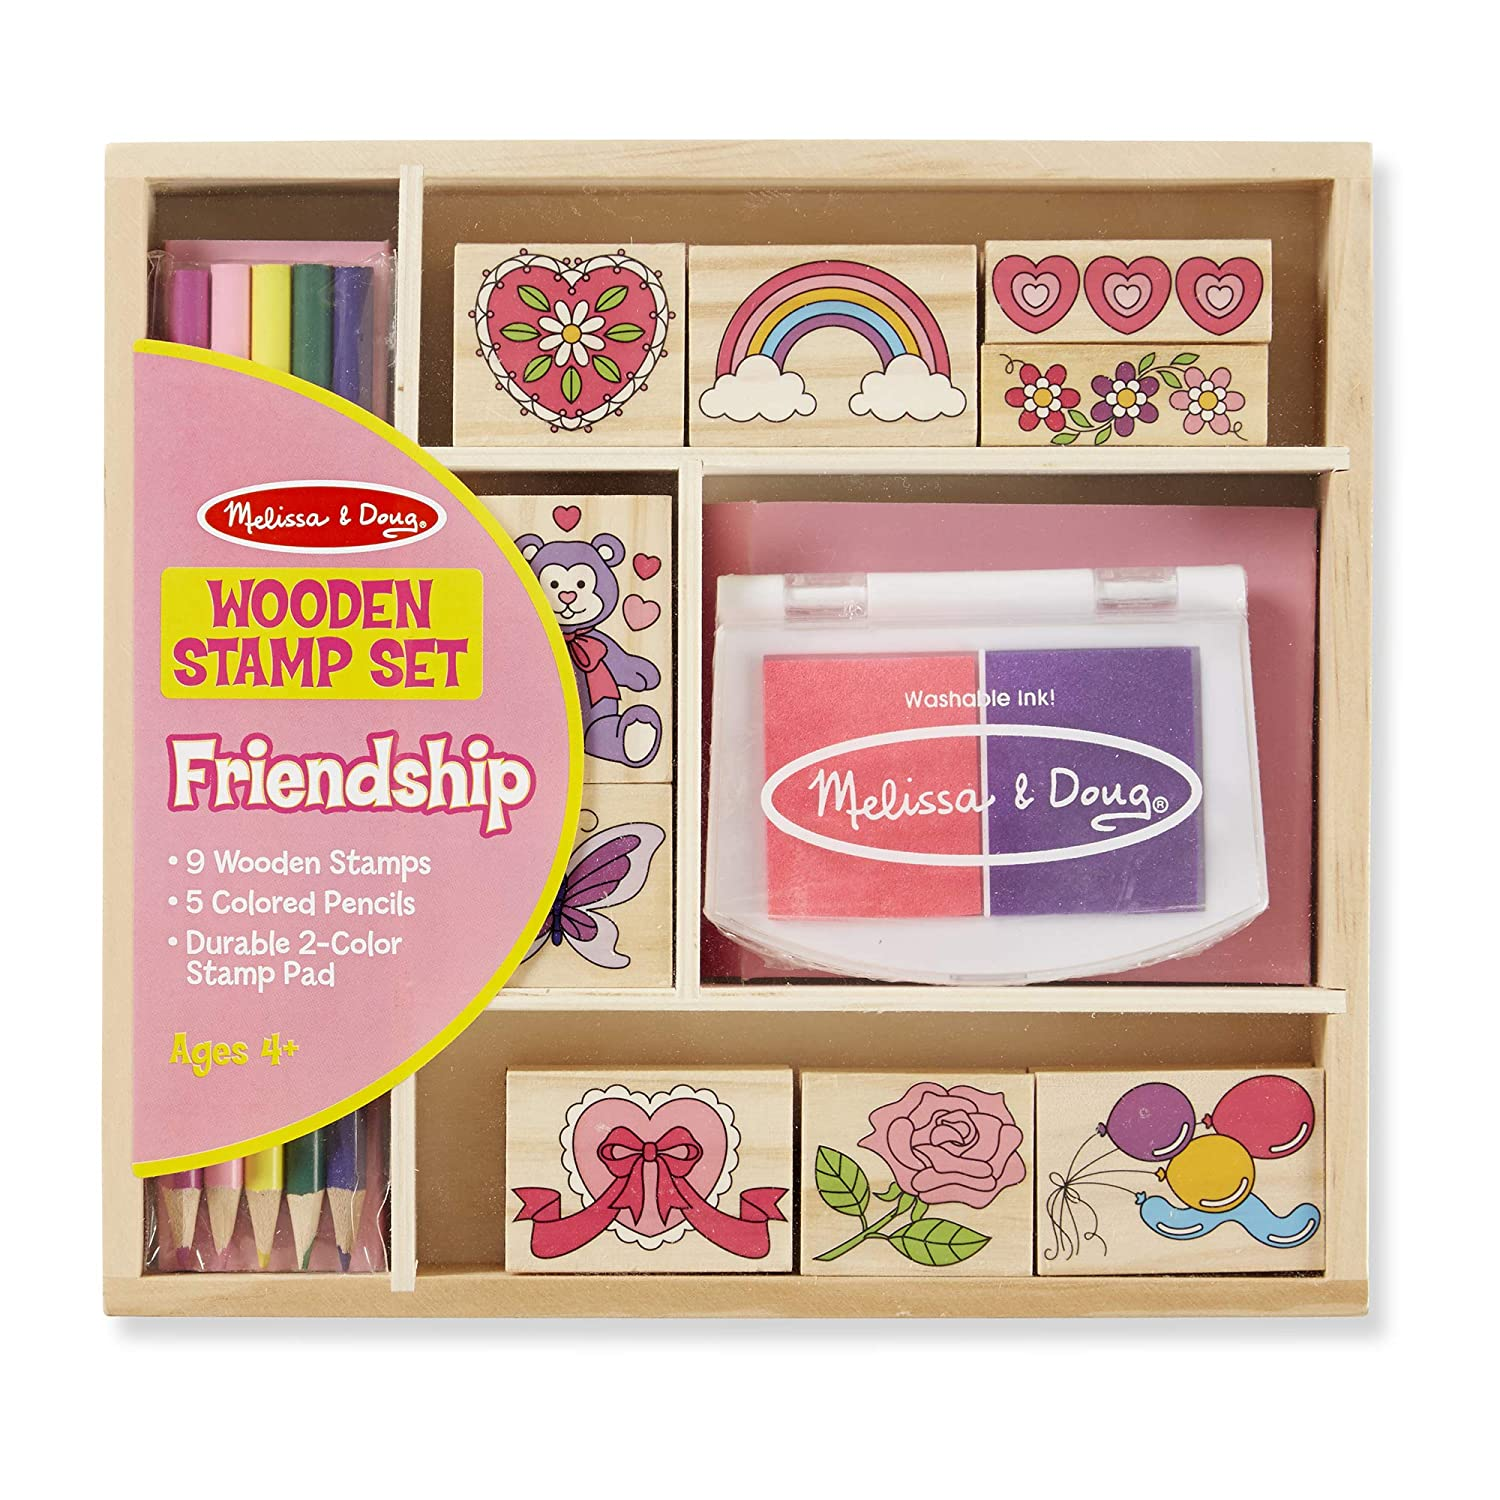 B0007L6M9A Melissa & Doug Wooden Stamp Set: Friendship (9 Stamps, 5 Colored Pencils, and 2-Color Stamp Pad, Great Gift for Girls and Boys - Best for 4, 5, 6 Year Olds and Up) 81-8YU82qtL